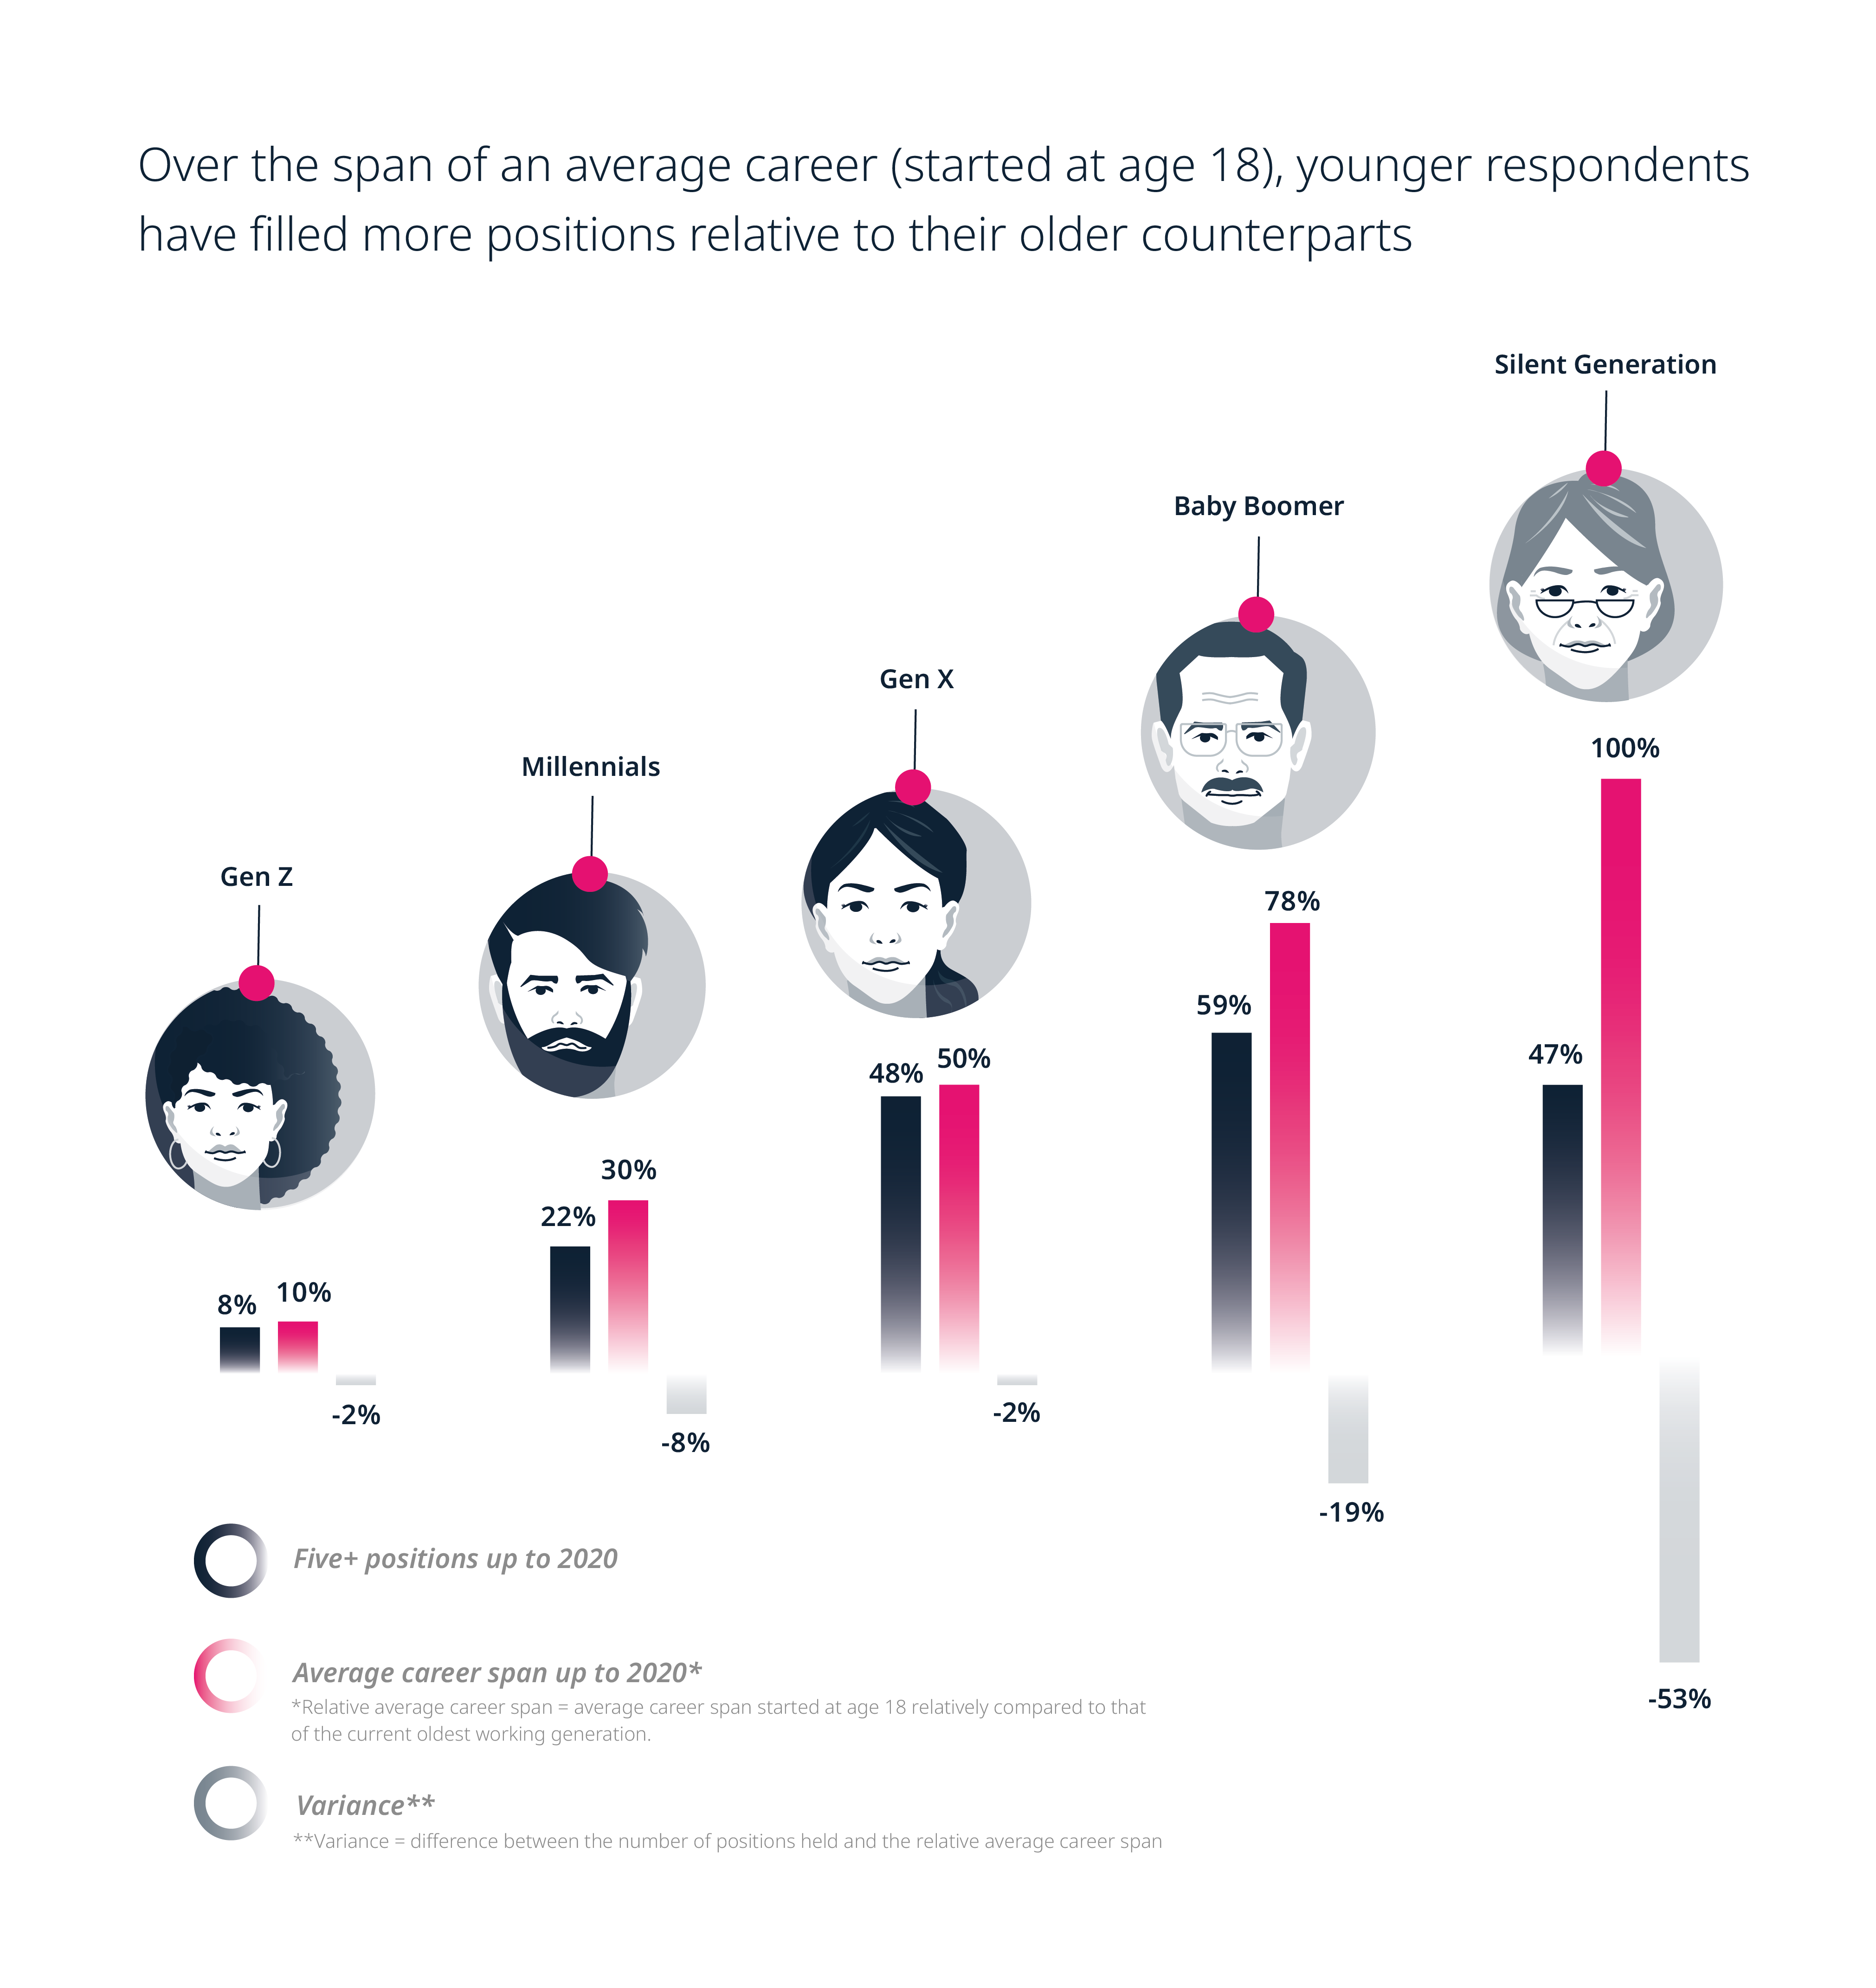 Over the span of an average career, younger respondents have filled more positions relative to their older counterparts